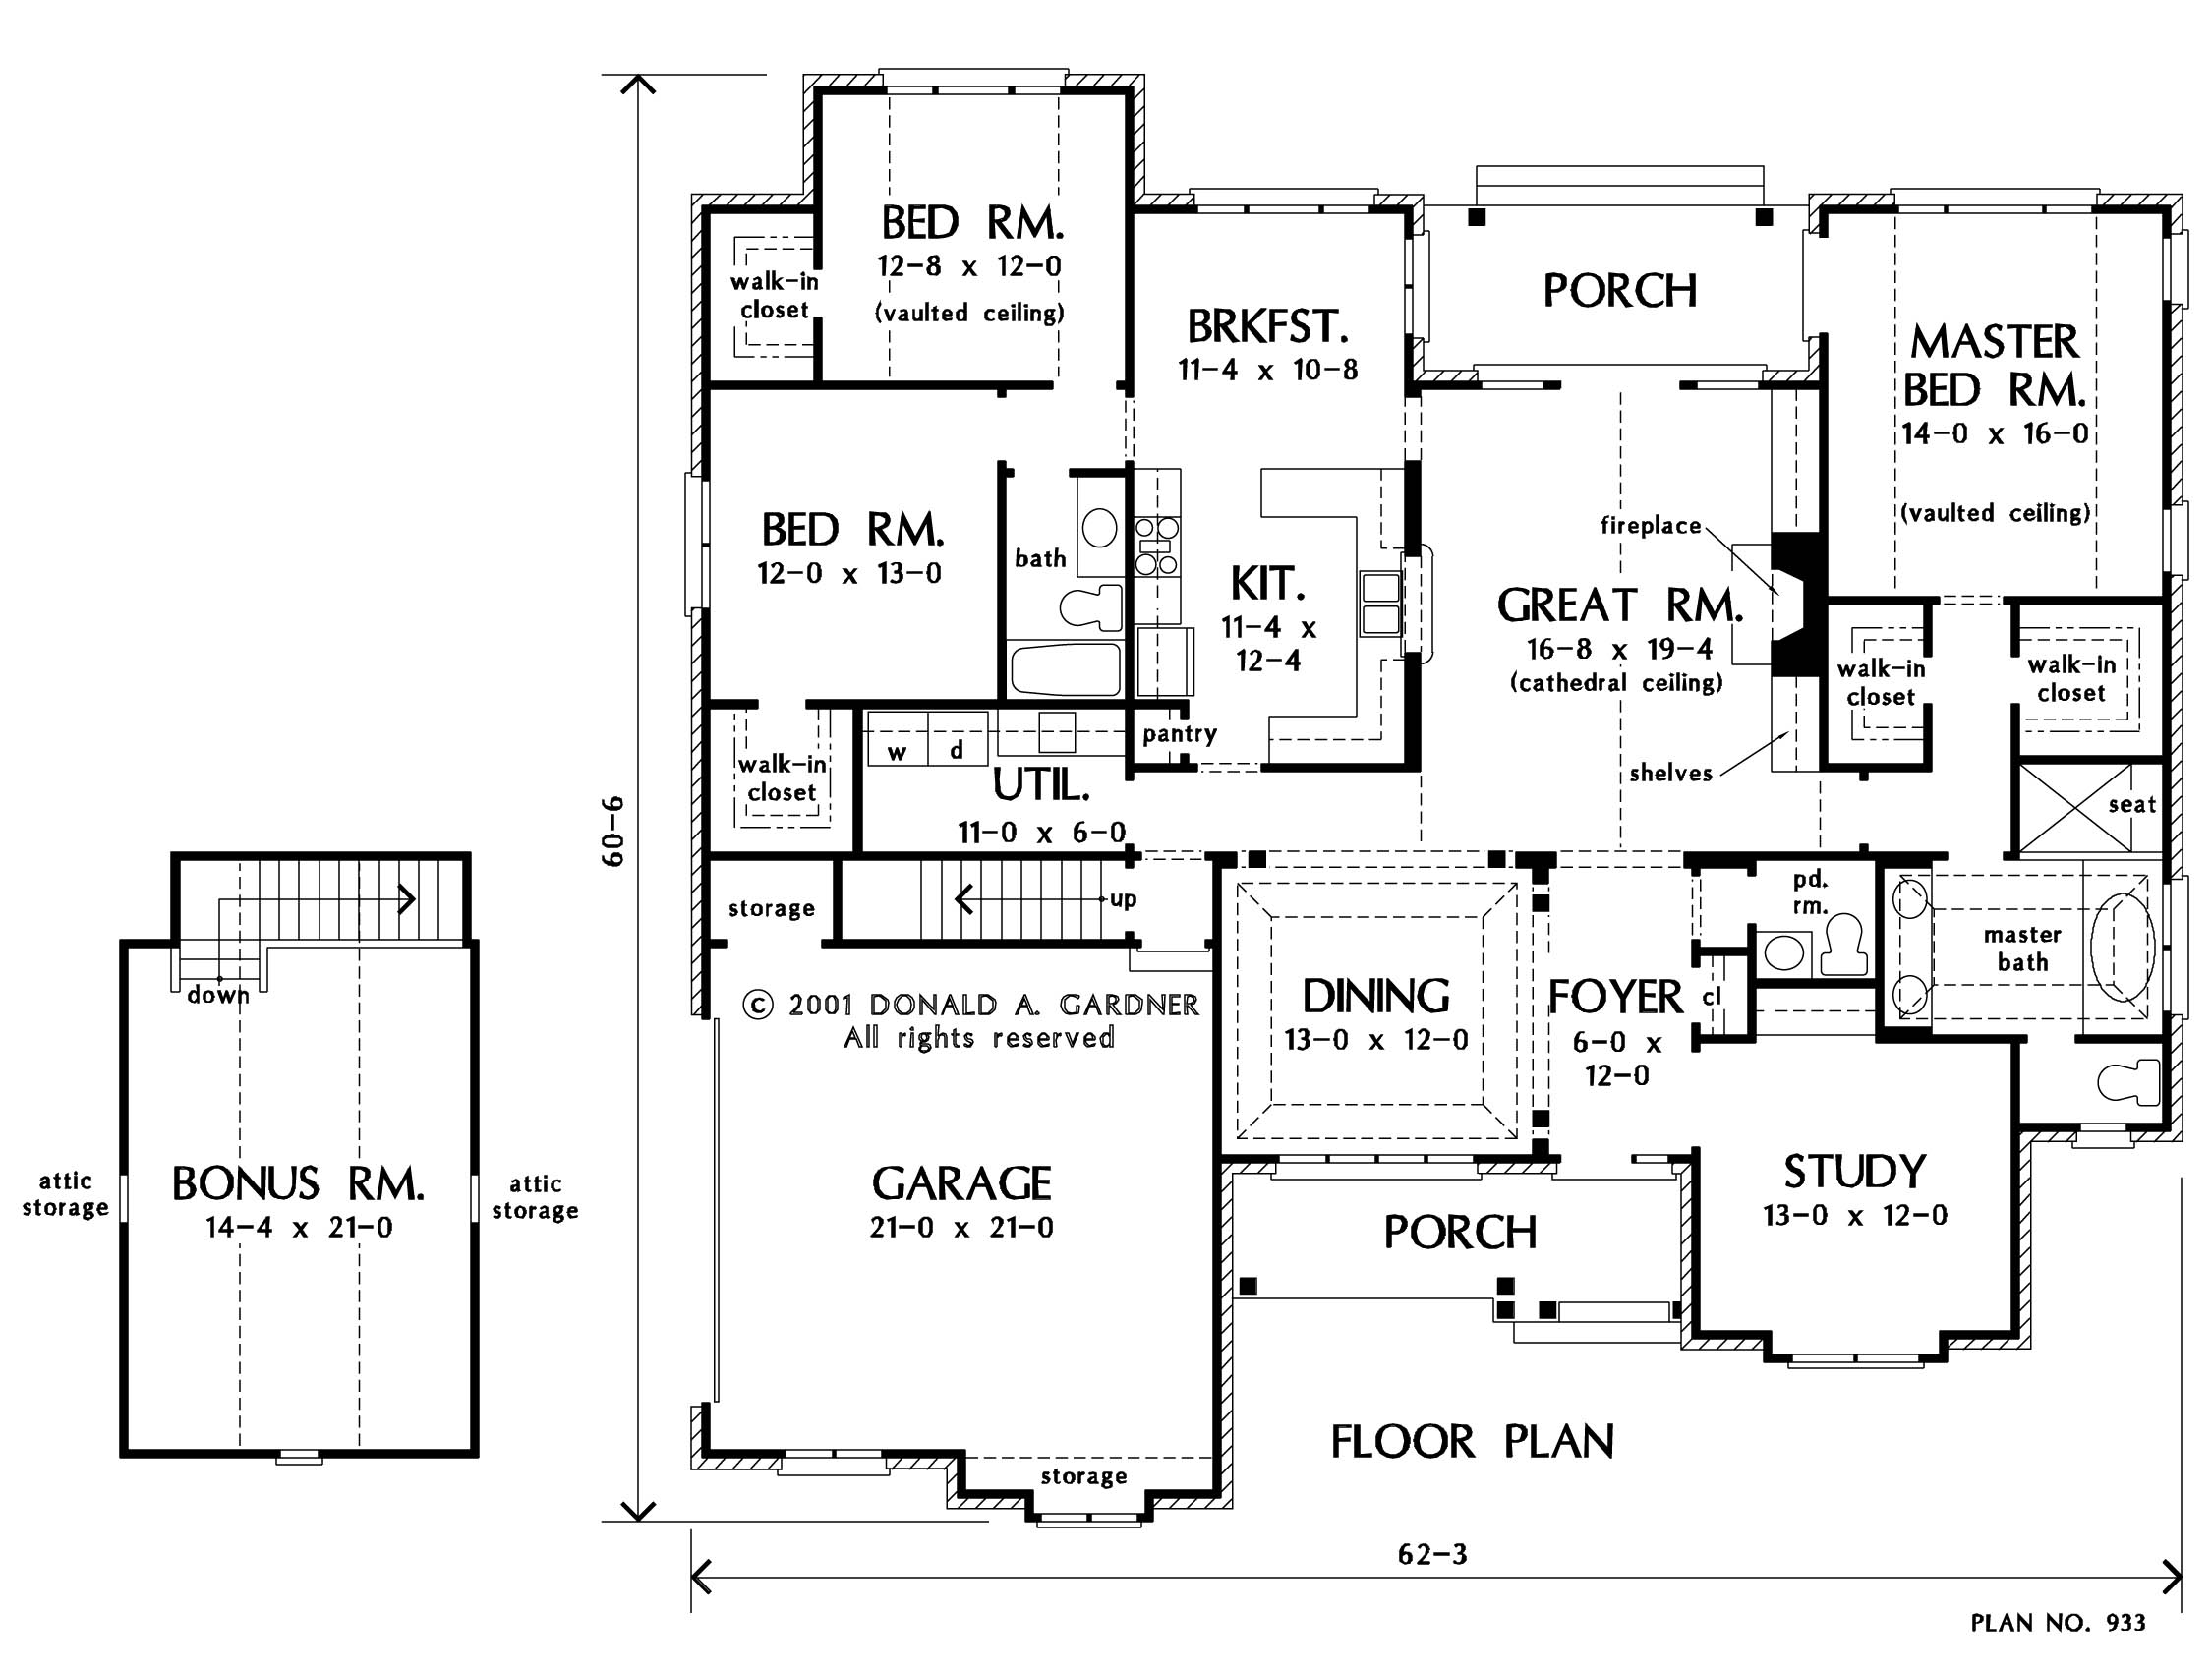 New construction yankton real living carolina property real living real estate - New home construction designs ...